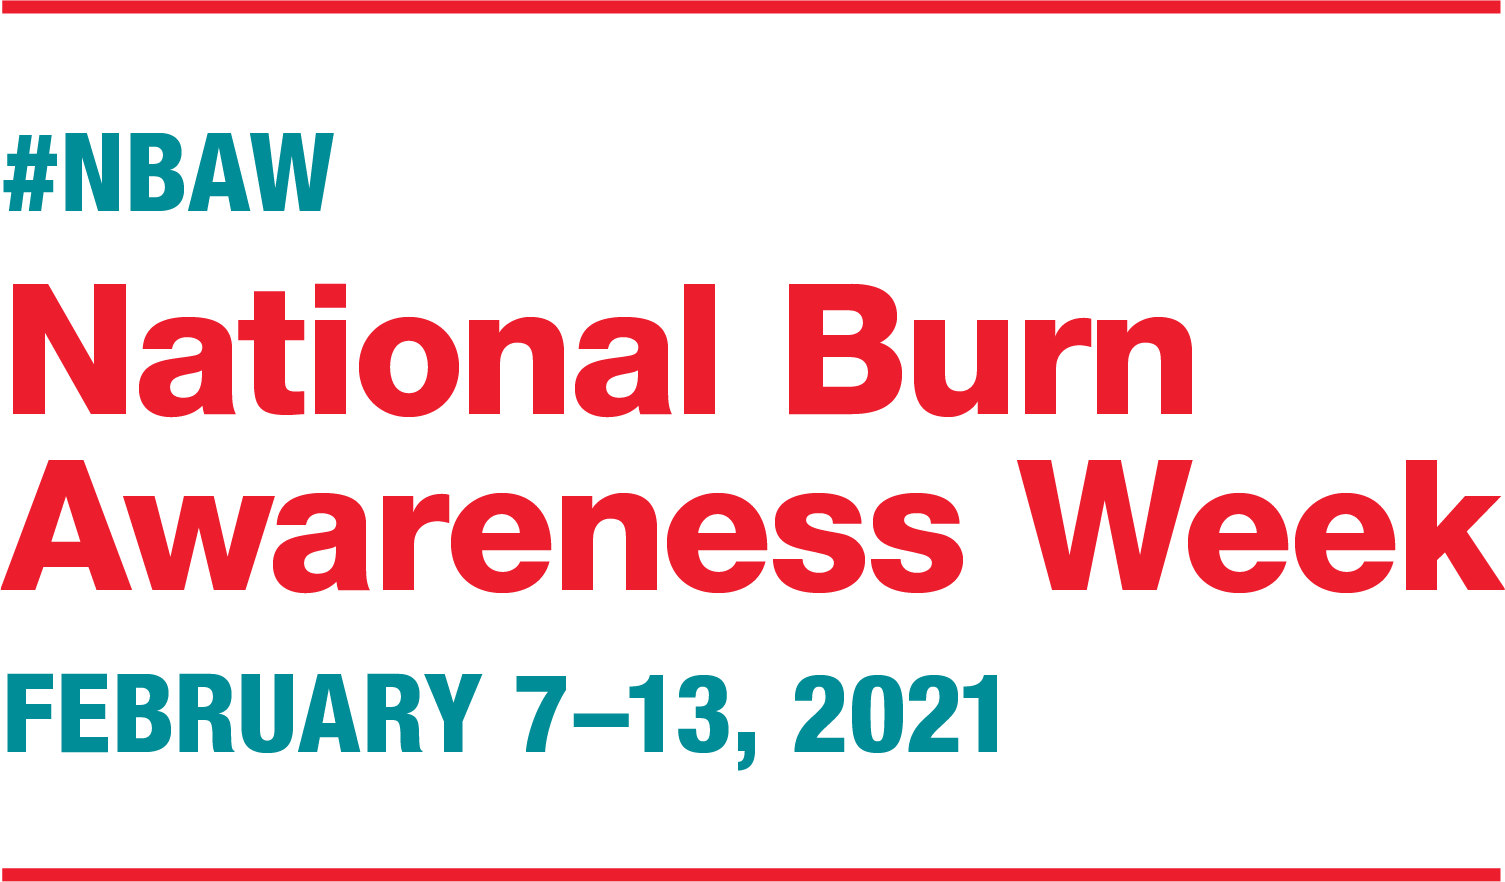 National Burn Awareness Week, February 7-13, 2021